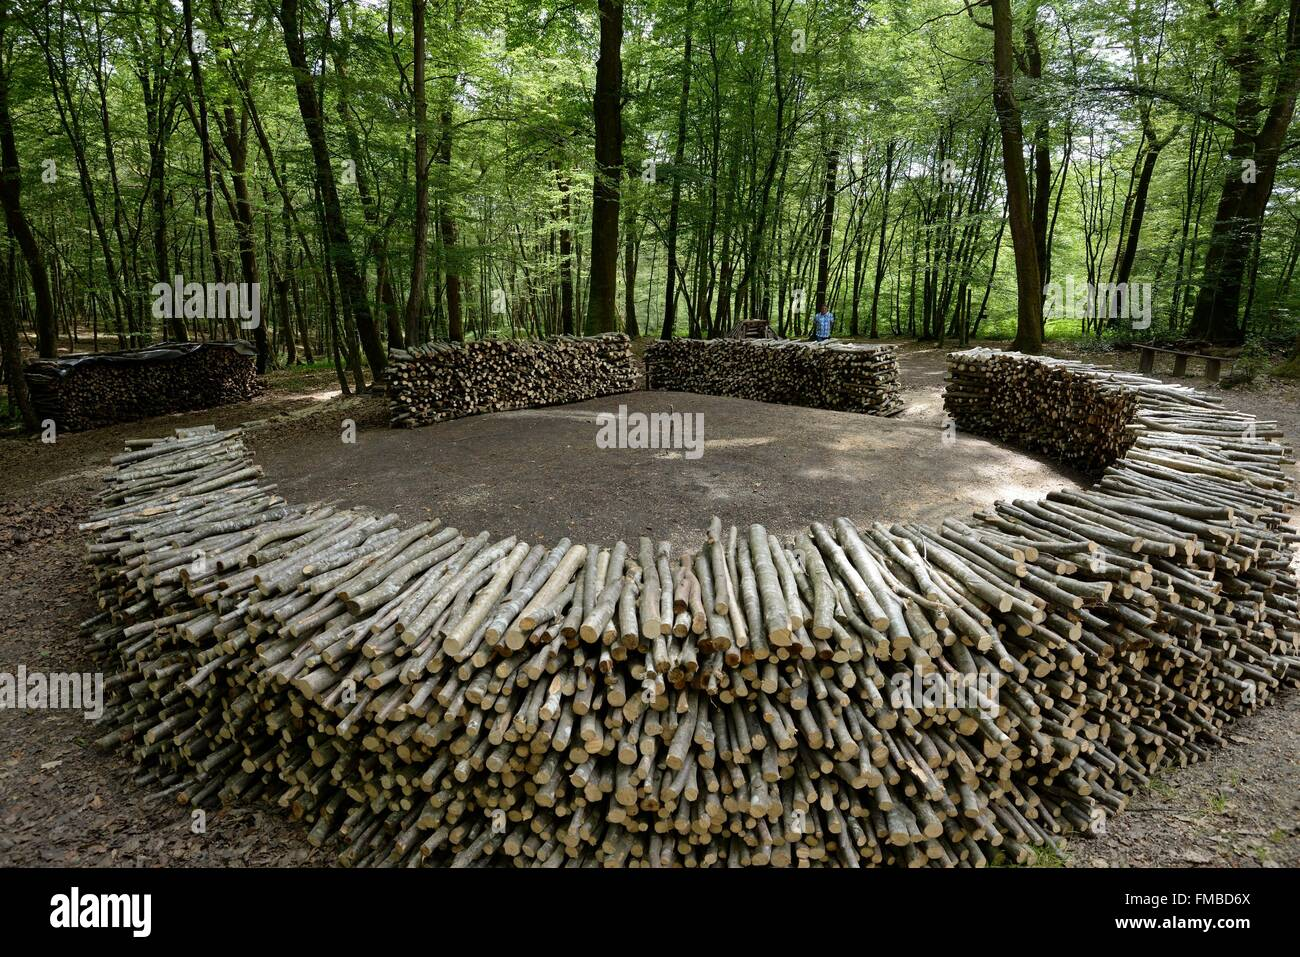 France, Jura, near Dole, Chaux forest, La Vieille Loye, Baraques du 14, wood charcoal, preparation of a wood grinder - Stock Image